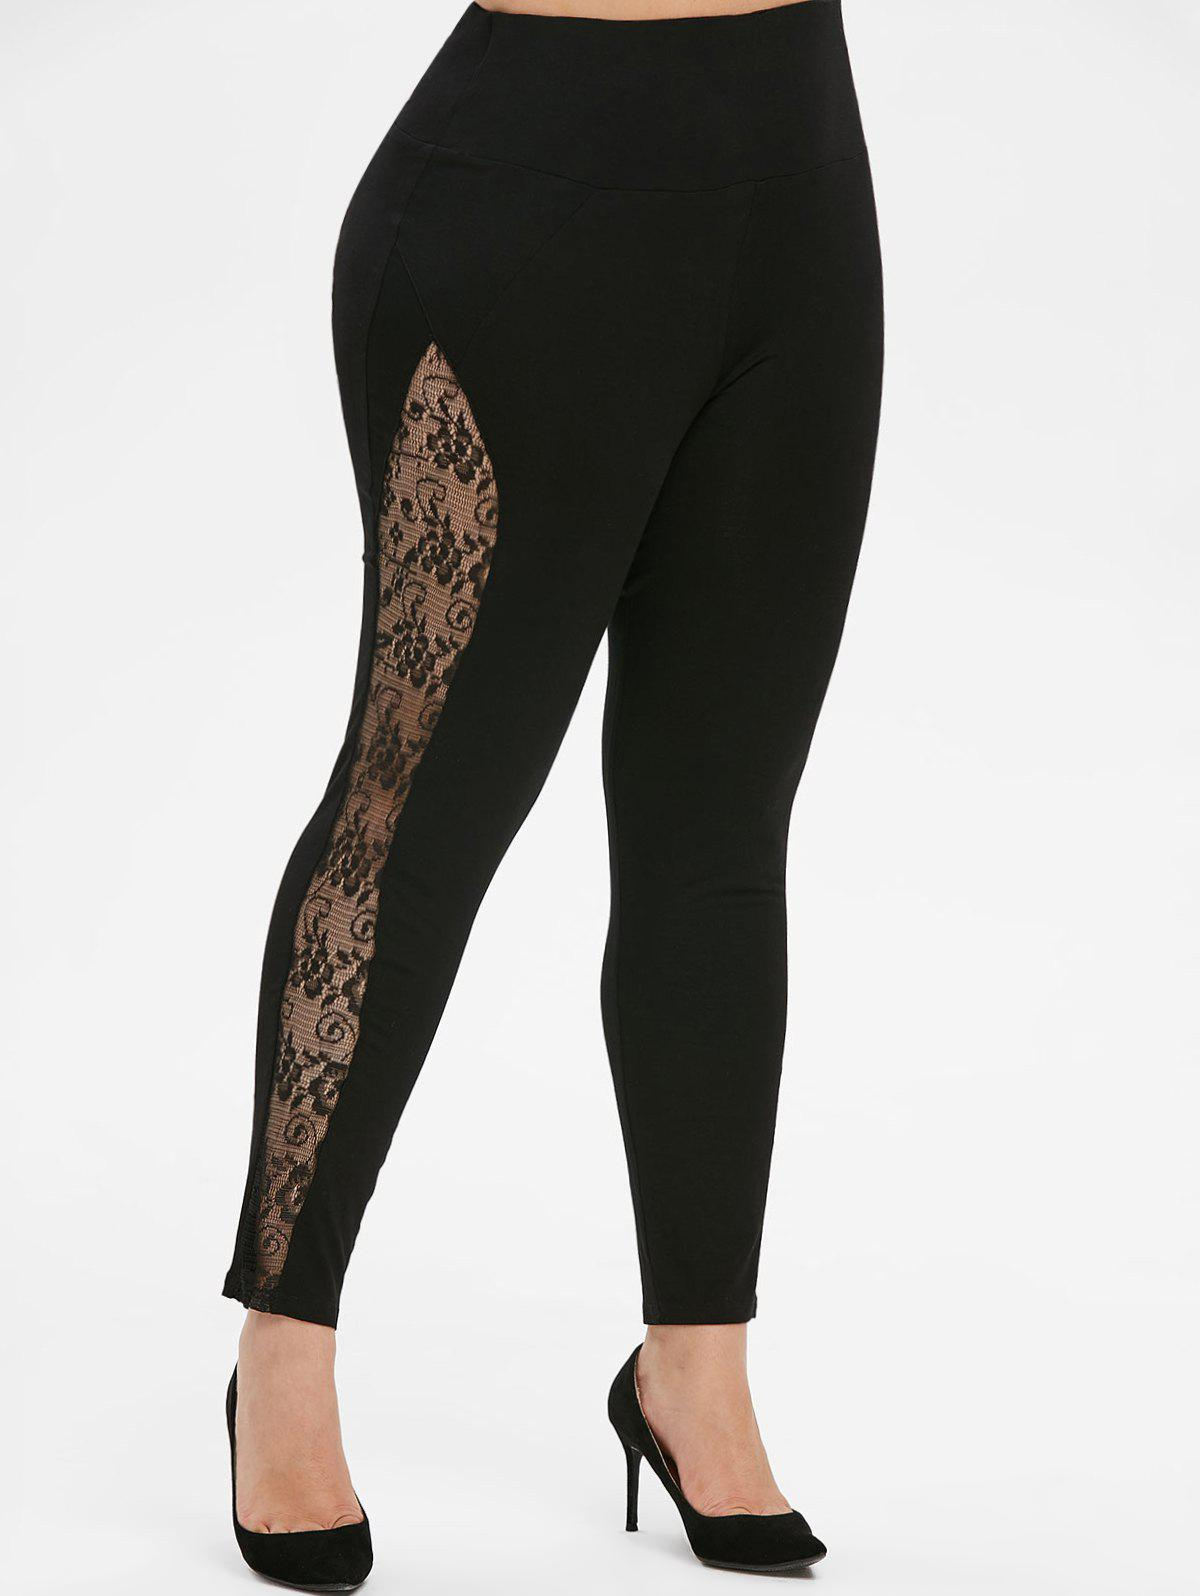 Pull On Lace Panel High Waisted Plus Size Leggings - BLACK 3X